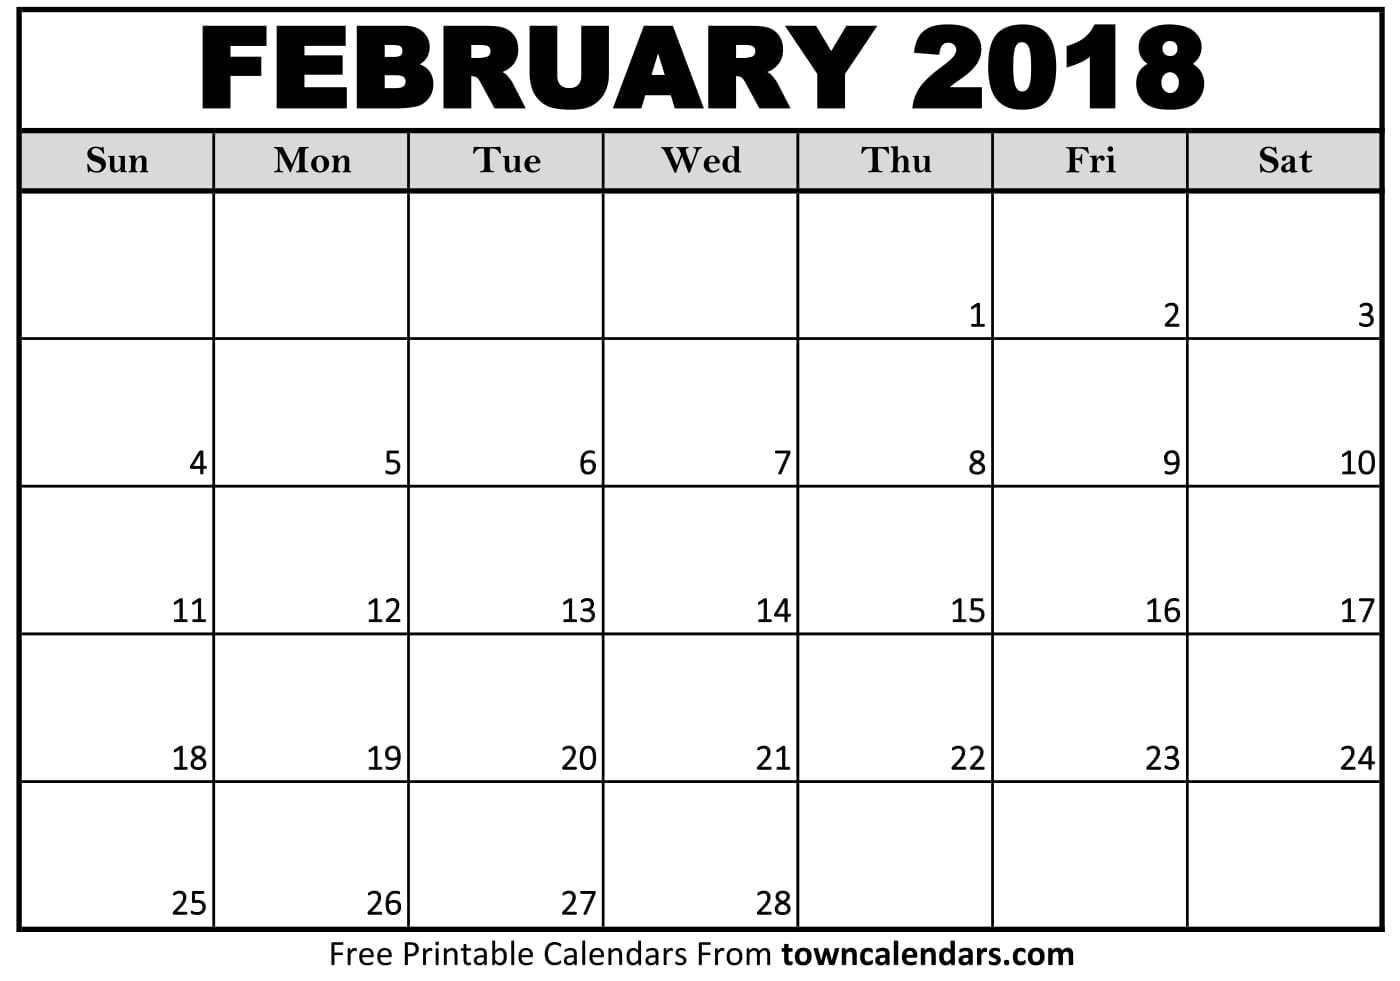 Blank Calendar February 2018 : February calendar printable template pdf with